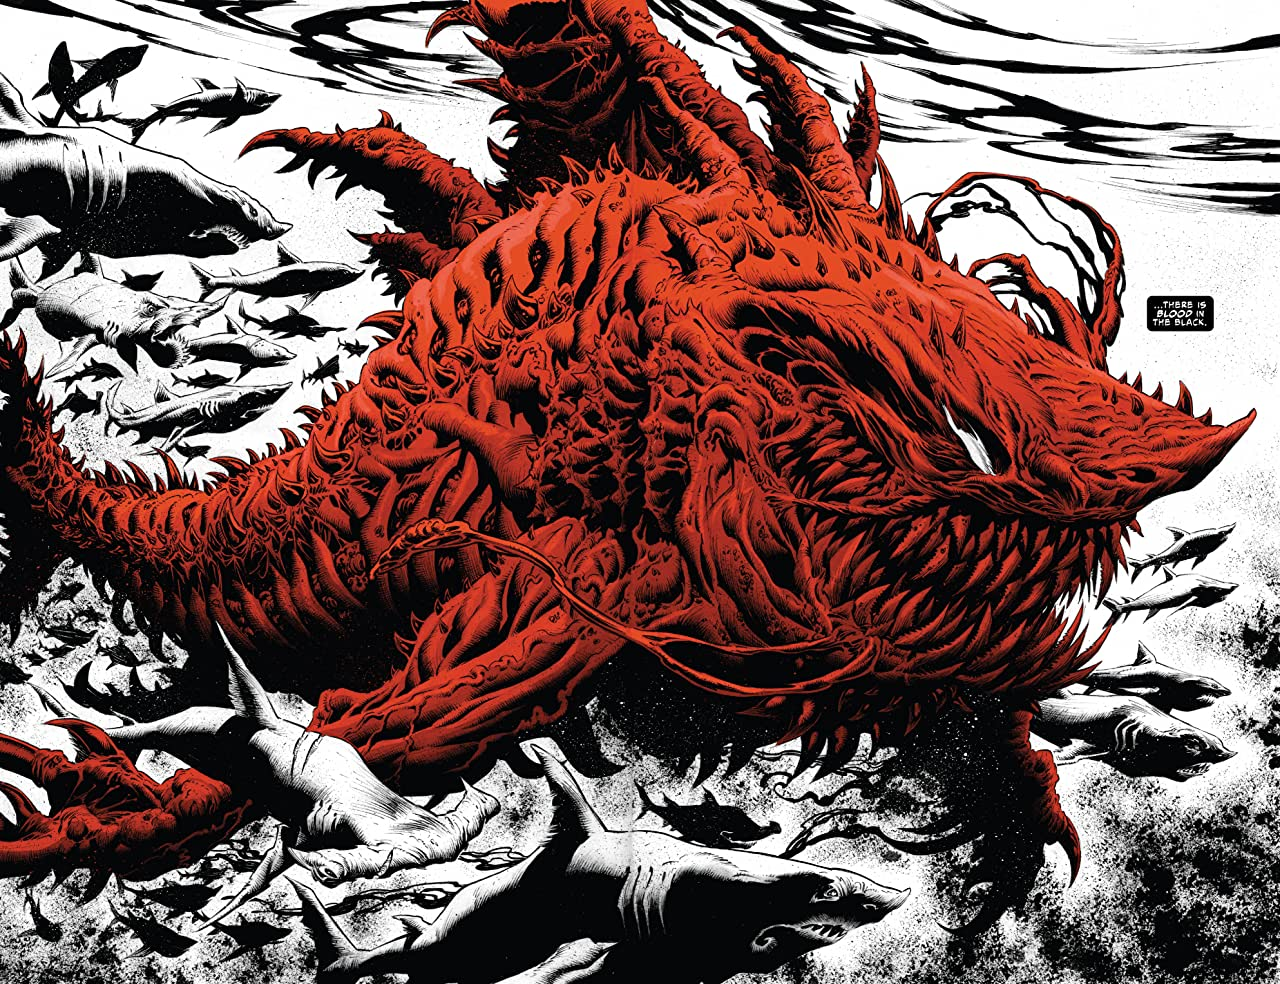 Carnage: Black, White & Blood (2021) #2 (of 4)